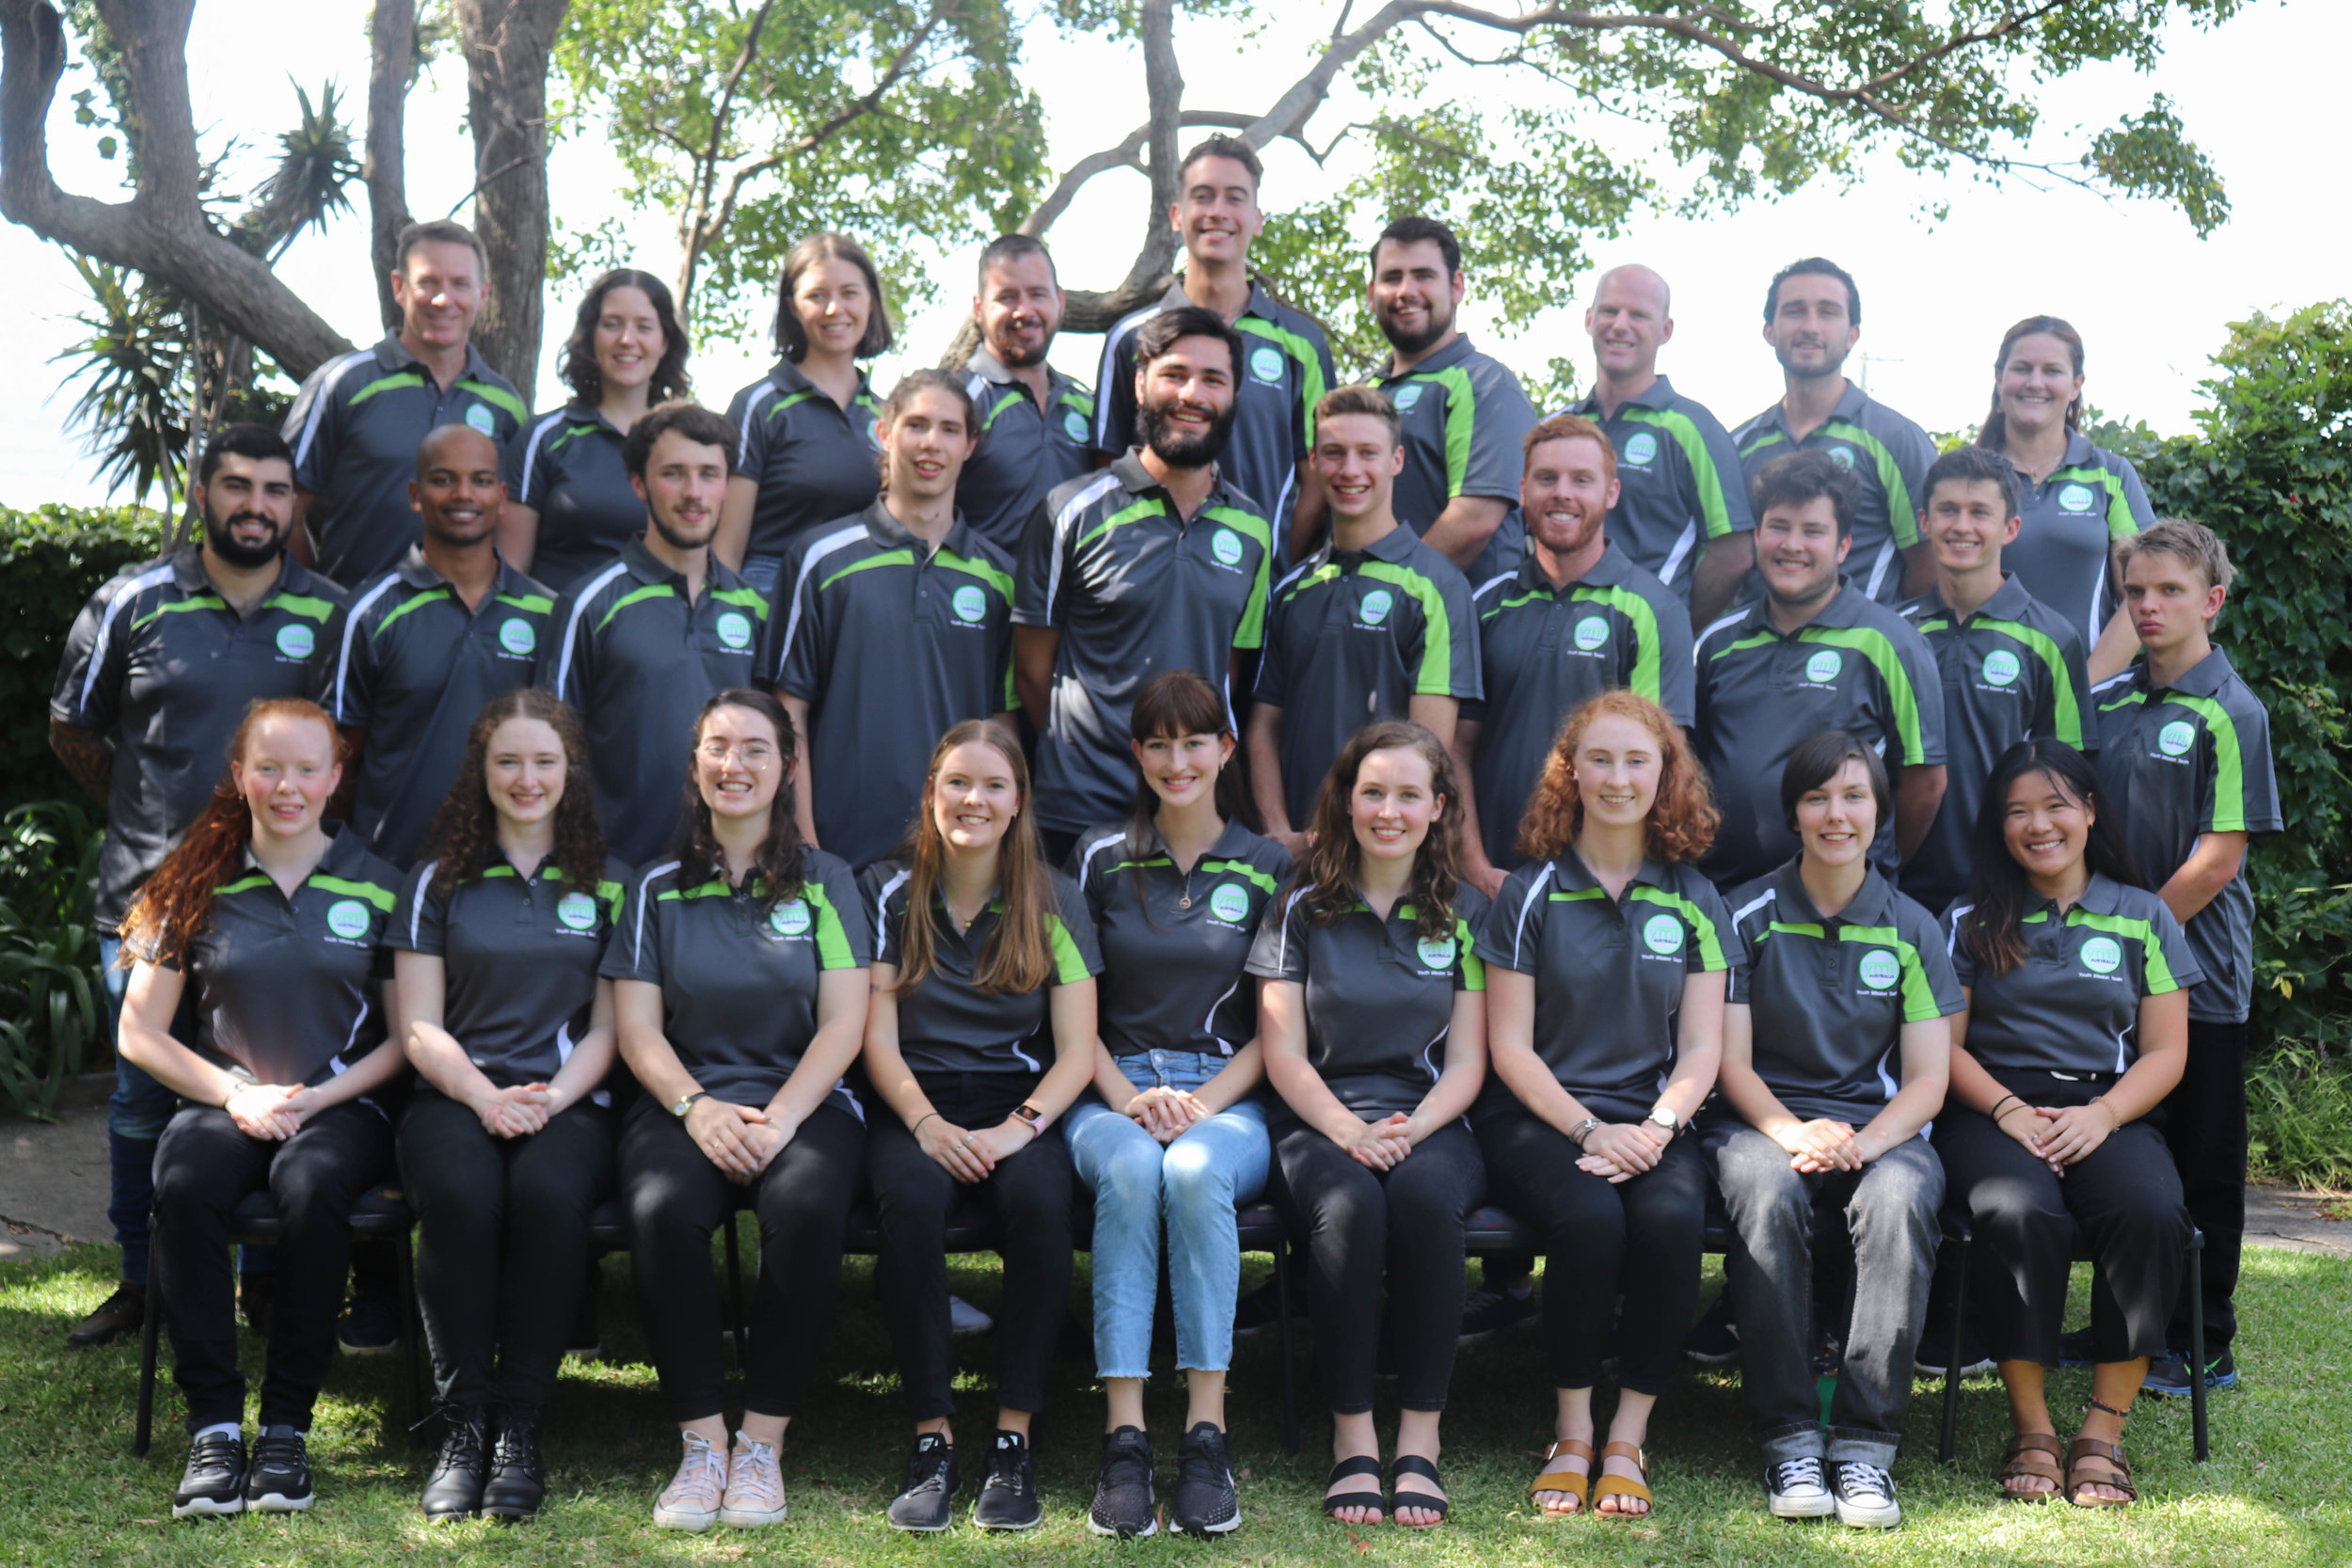 Top Row: Steve Toohey, Genevieve Schaefer, Louisa Daniels, Peter Dominish, Andrew Placko, Joshua Hunter, Tim Fitzwiliam, David Pullella, Christy Honeysett Second Row: Joshua Natoli, Sunny Fernandez, Luke Schaefer, Joseph Phillips, Dominic Drumore, Samuel Clare, Andrew Toohey, Chris Galea, Anthony Bolling, Aaron Walsh Bottom Row: Rachel Walsh, Therese Ward, Jessyka Jakovcevich, Lauren Bailey, Catherine Sardinha, Madelyn McDermott, Antoinette Collins, Eilidh Direen, Nathlene Ng